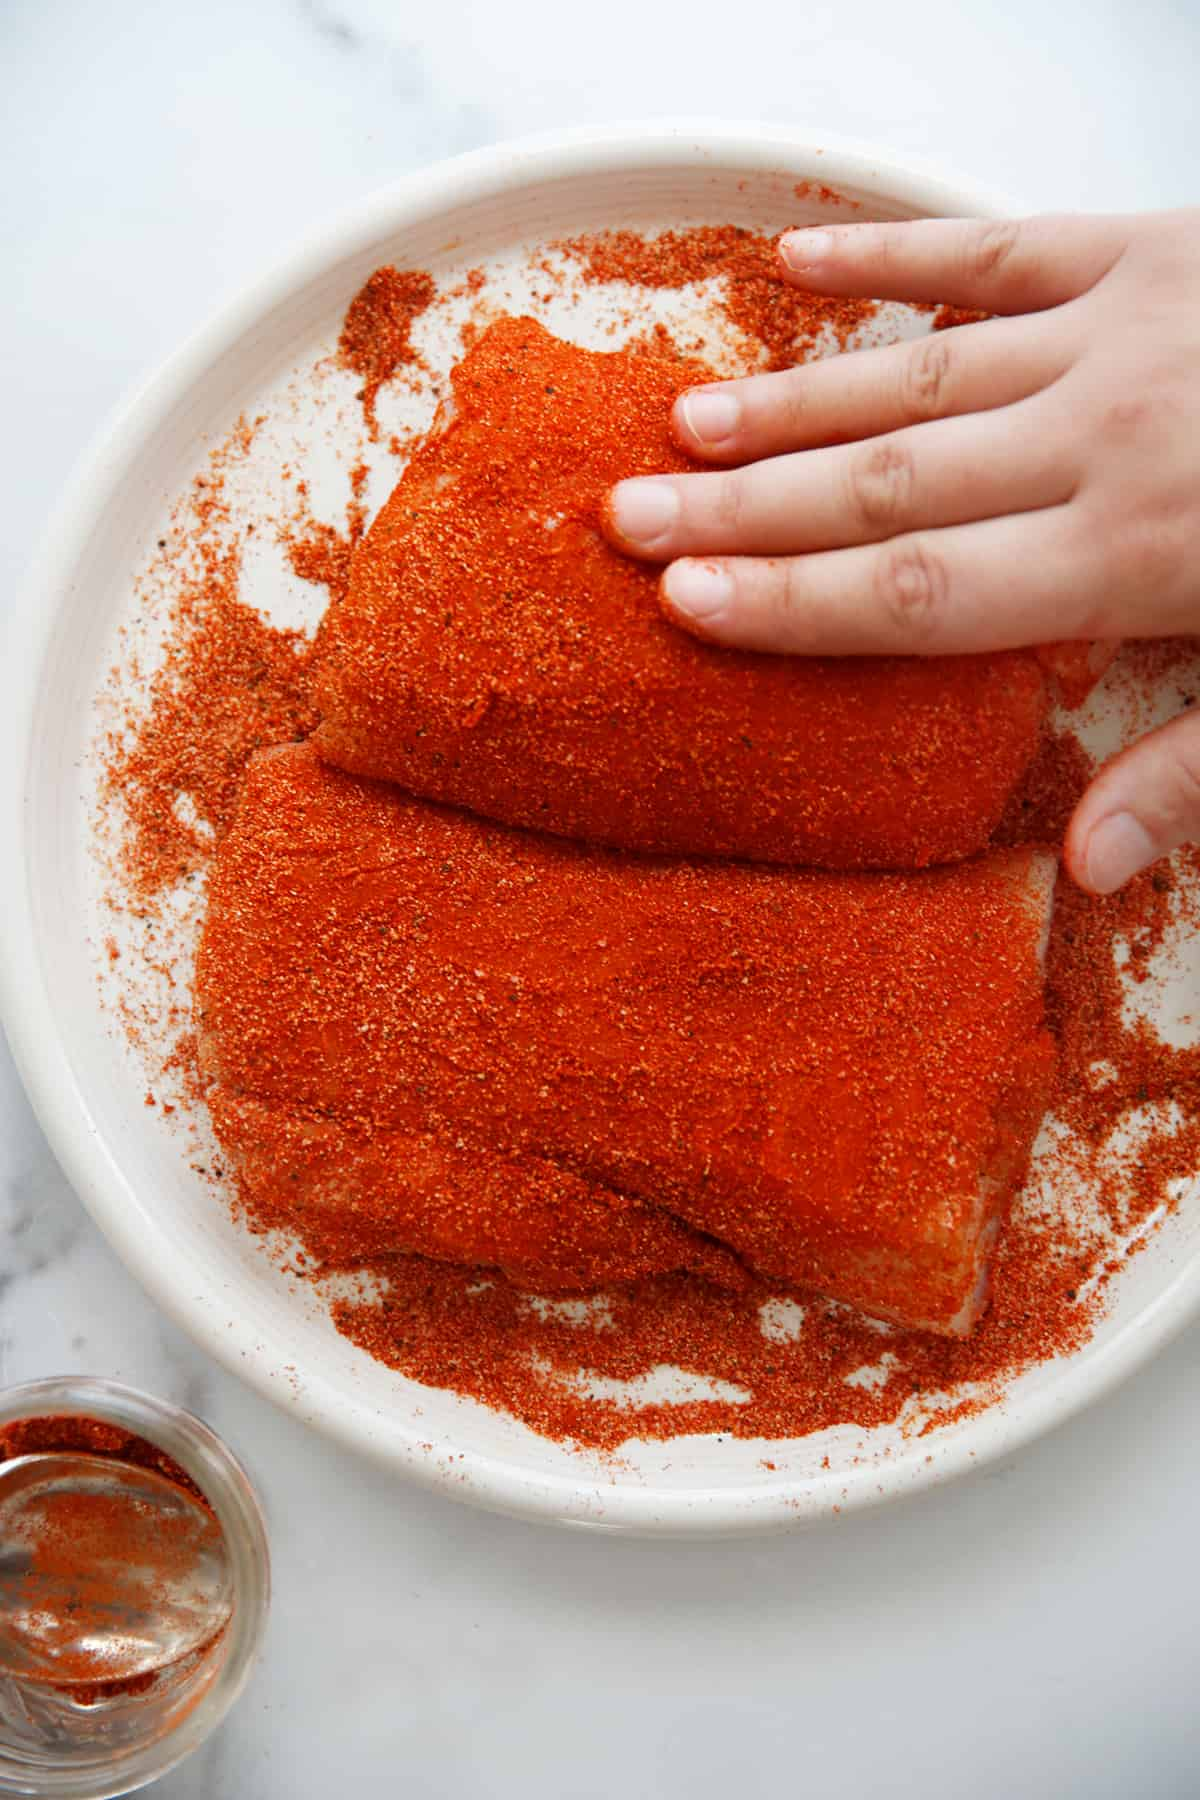 Rubbing the spice blend on the fish